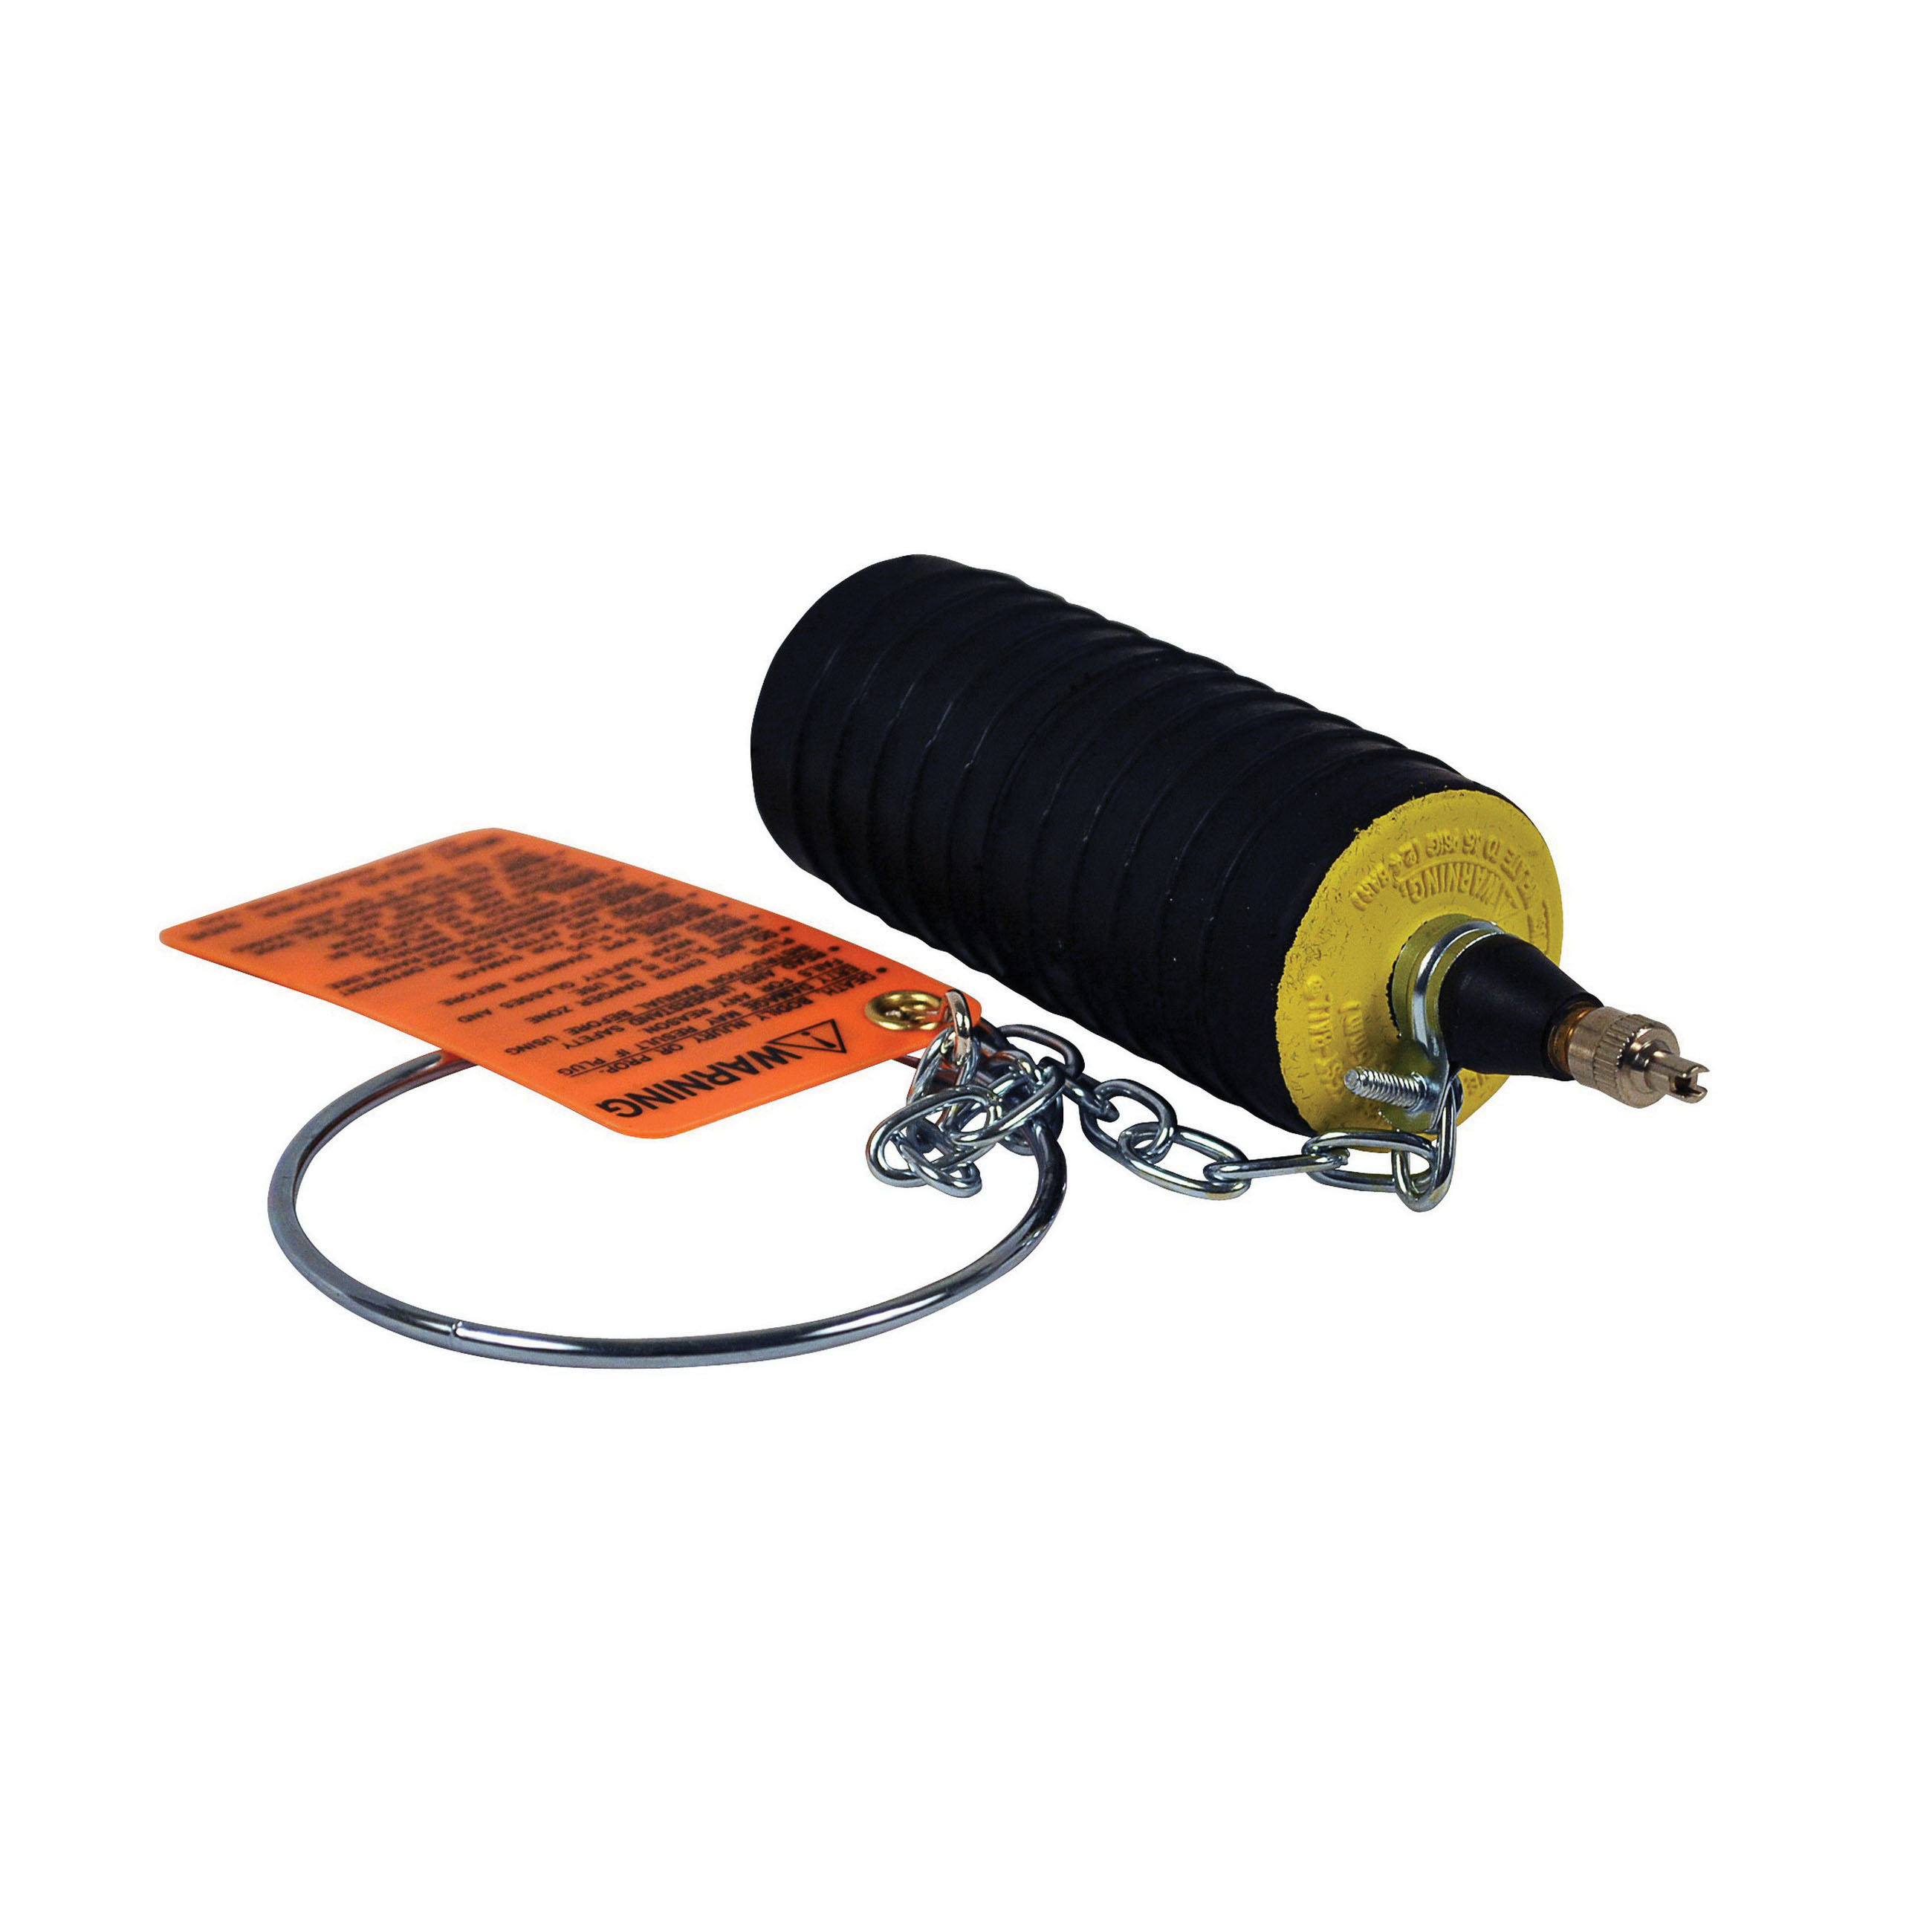 Cherne® Test-Ball® 276-238 Zinc Plated Chain Black/Yellow Natural Rubber Multi-Size Pneumatic Plug, 2 - 3 in